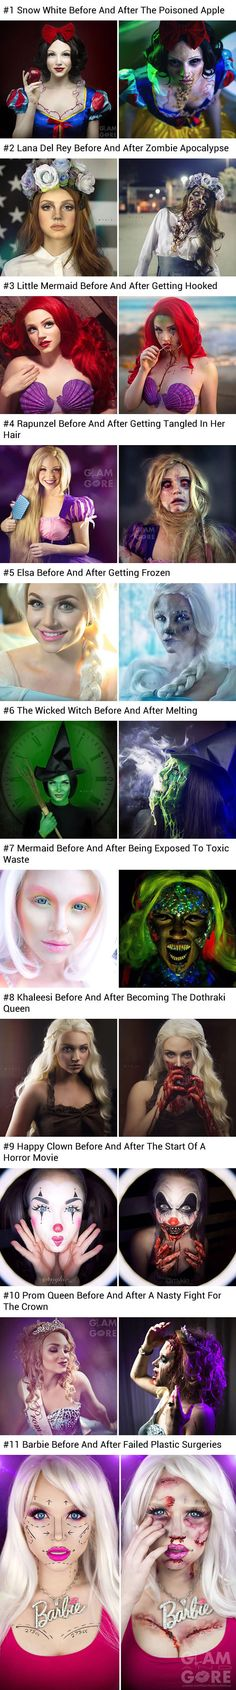 Glam and Gore, Mykie - Makeup Artist Shows The Horrifying Fate Of Disney Princesses And Pop Icons Looks Halloween, Halloween Cosplay, Fall Halloween, Halloween Costumes, Halloween Mermaid, Dark Costumes, Halloween Series, Helloween Make Up, Makeup Fx